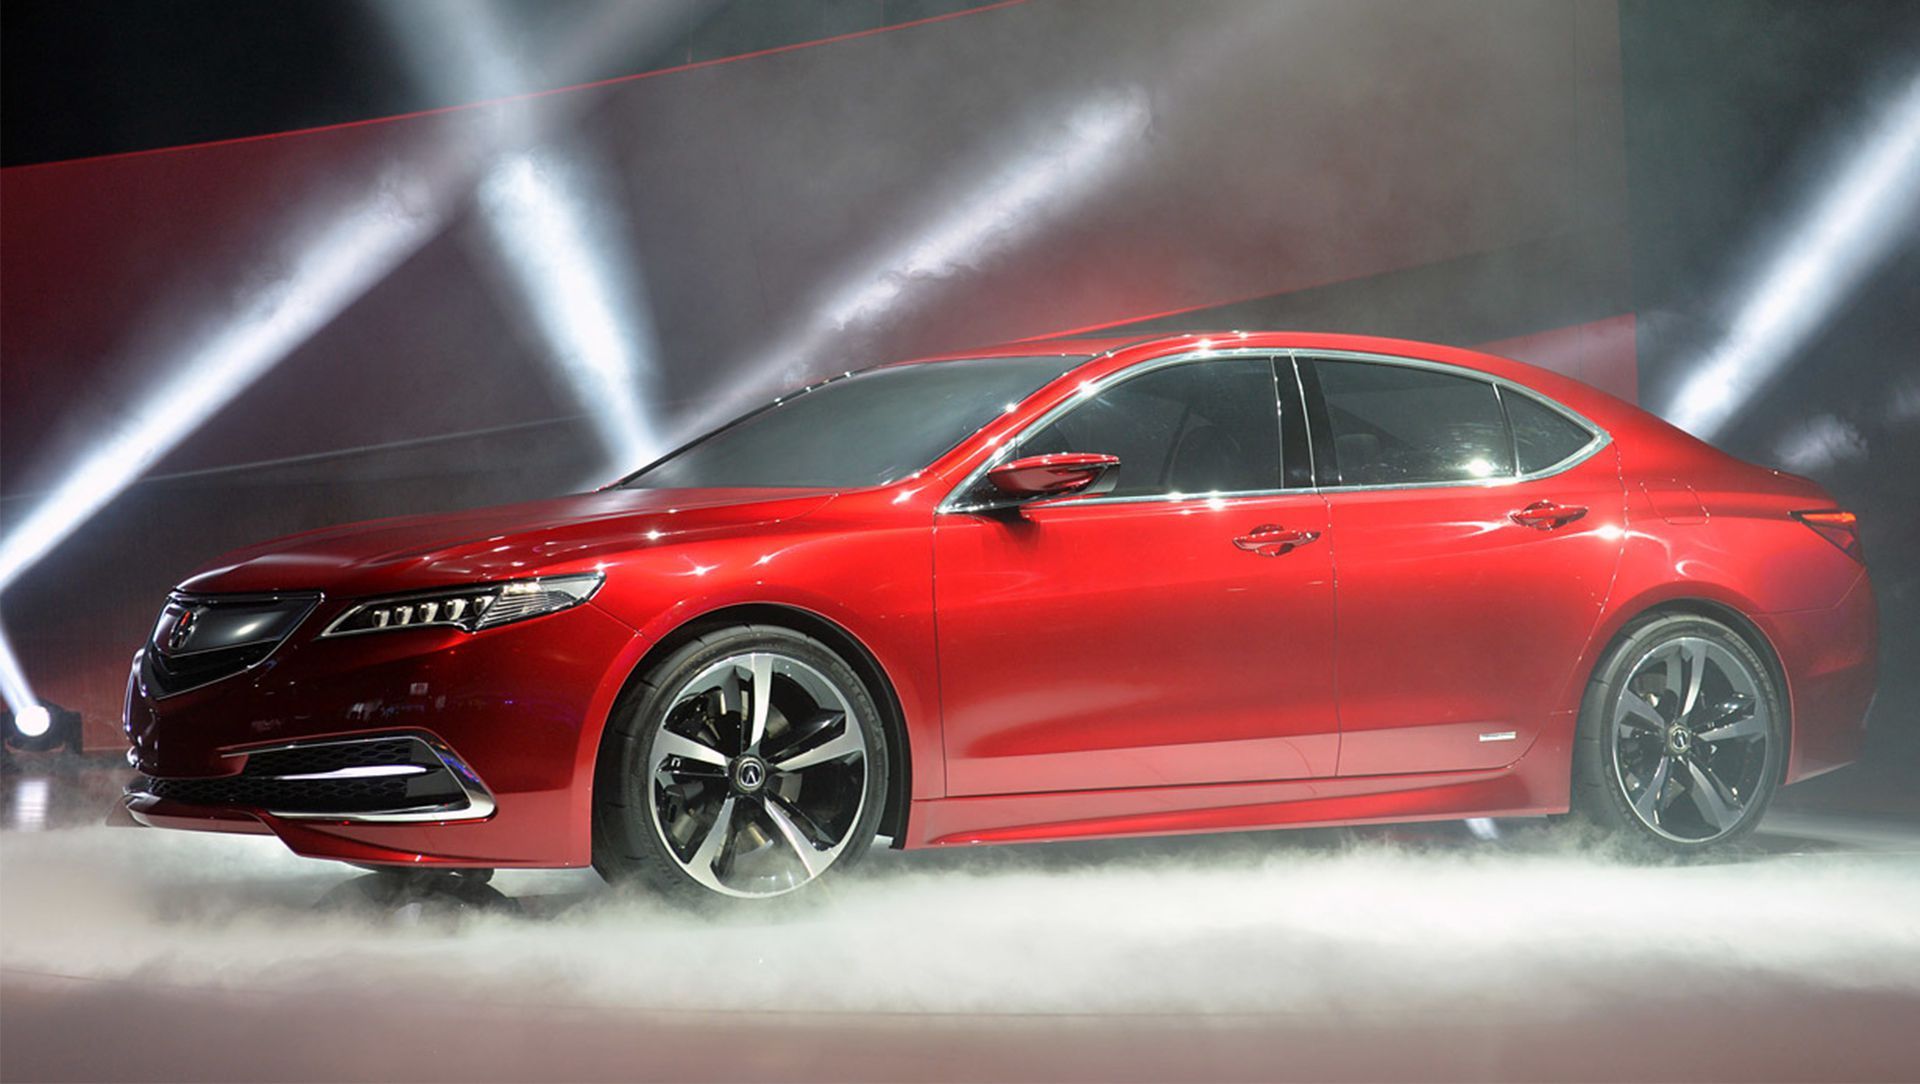 Detroit Auto Show Acura TLX Driving To Be A Red Carpet - Car show carpet